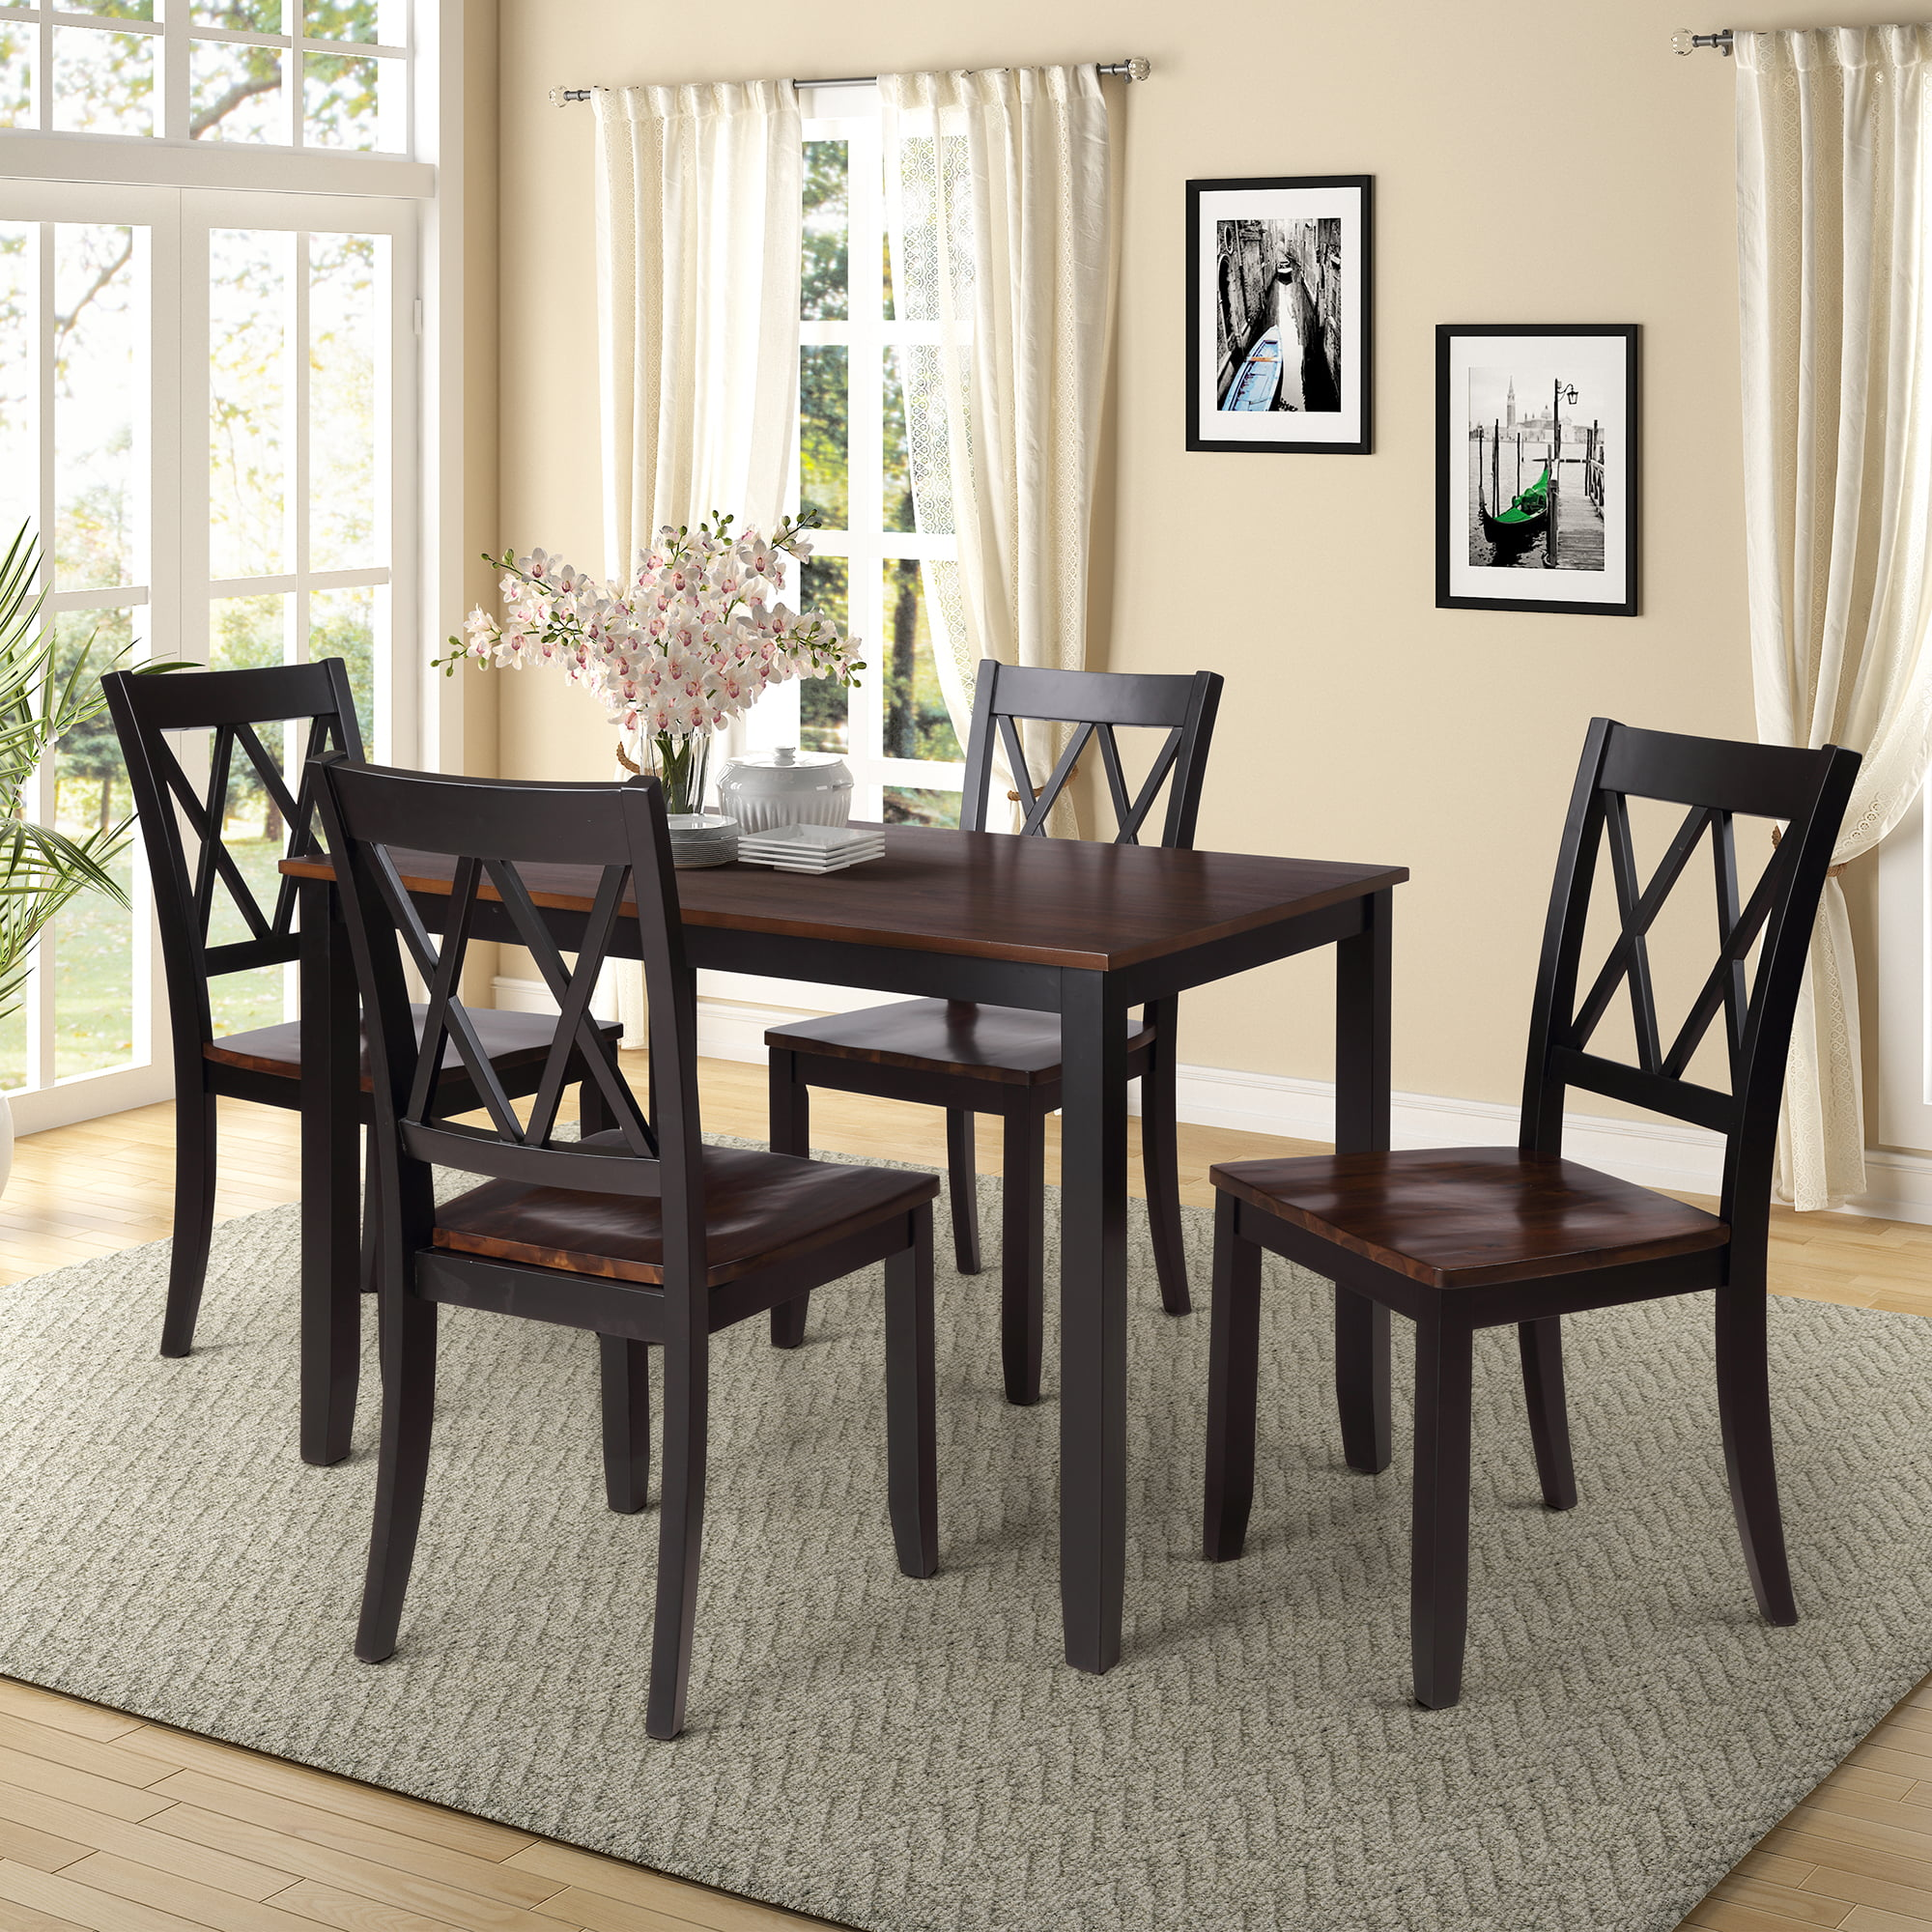 Clearance Black Dining Table Set For 4 Modern 5 Piece